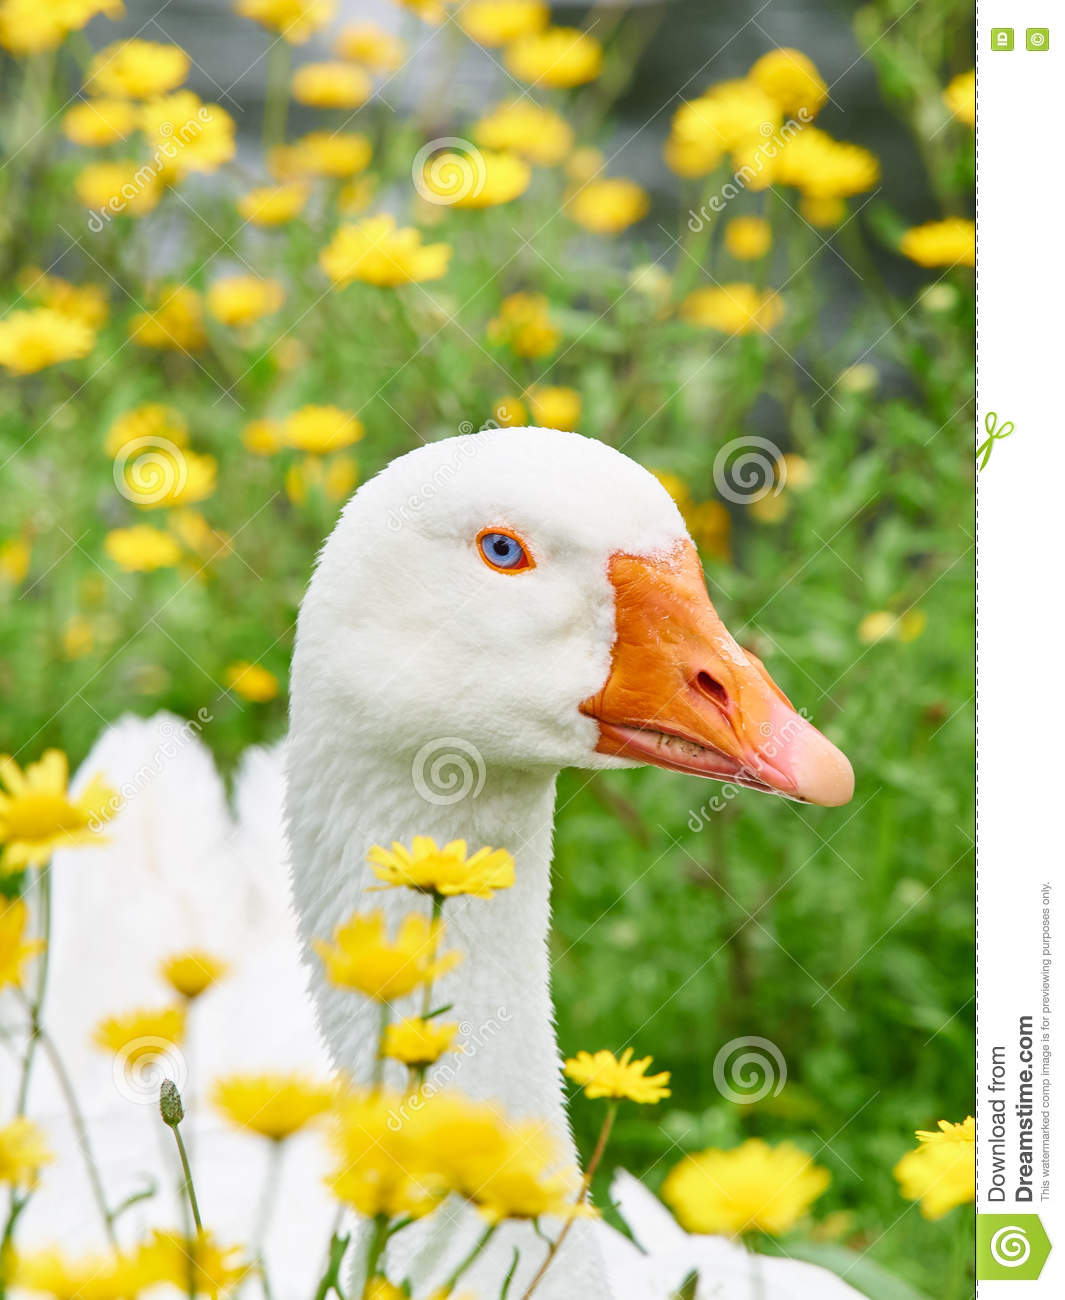 Portrait of a white geese in the grass surrounded by yellow flowers